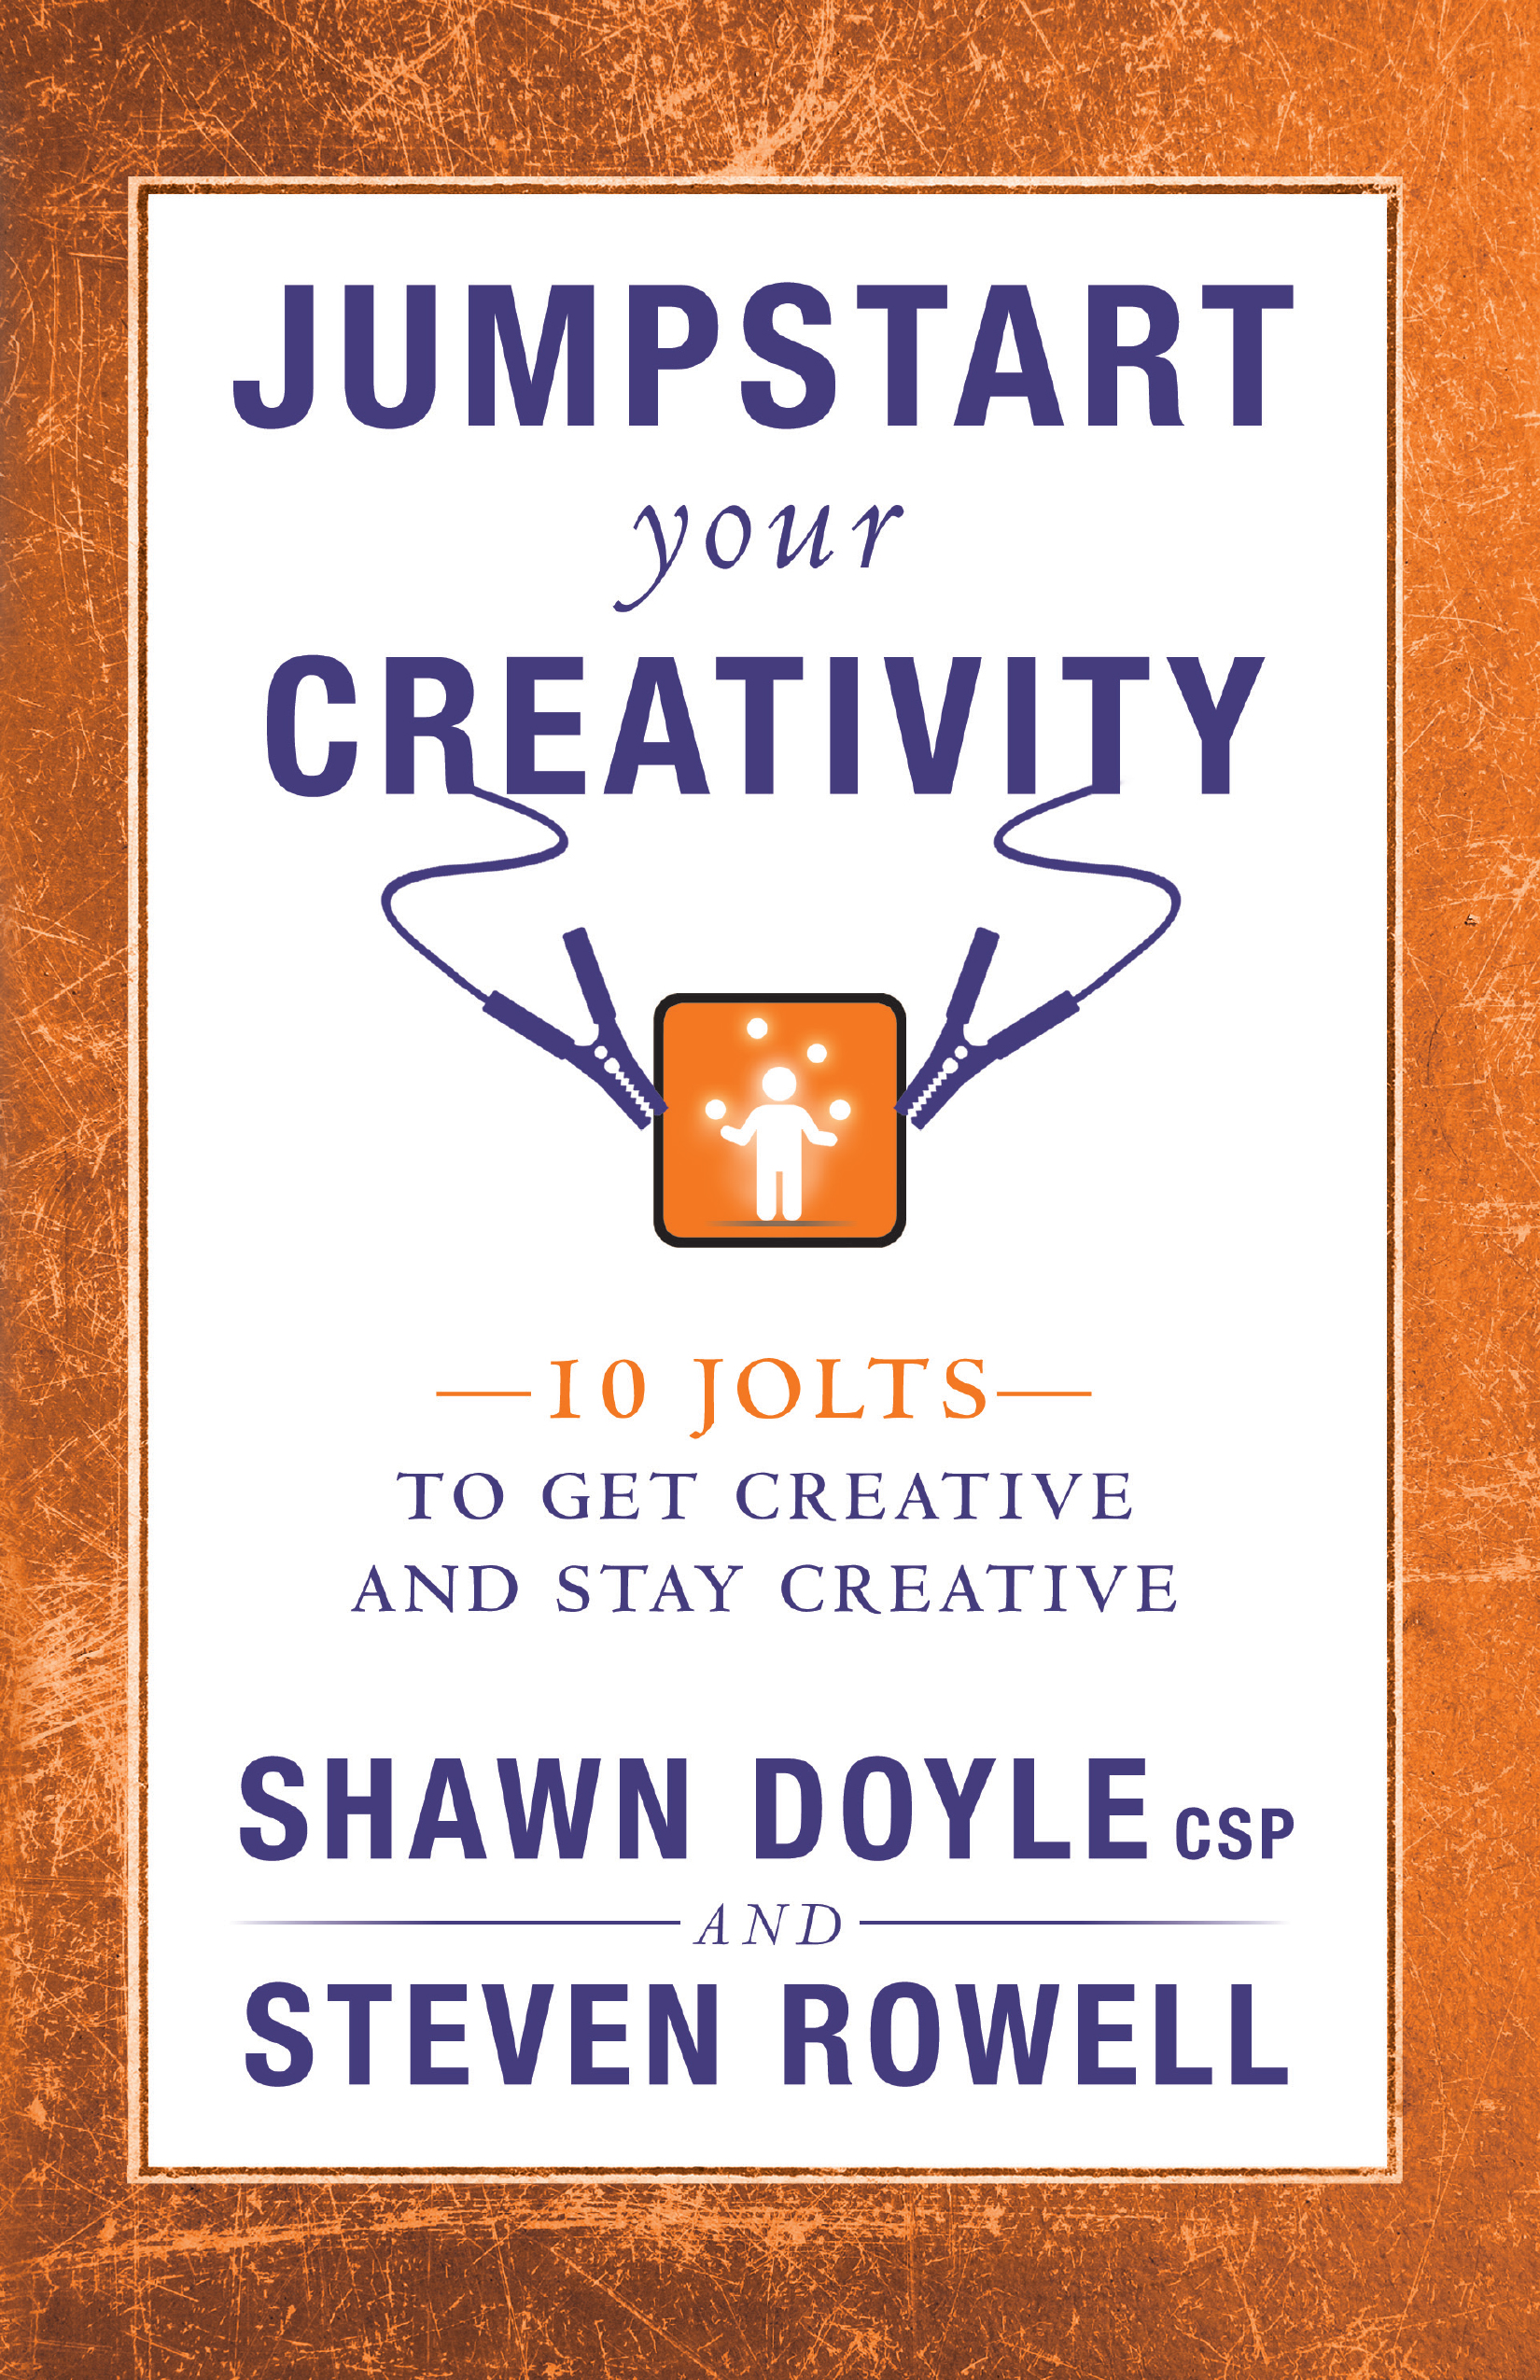 Jumpstart Your Creativity - By shawn doyle csp